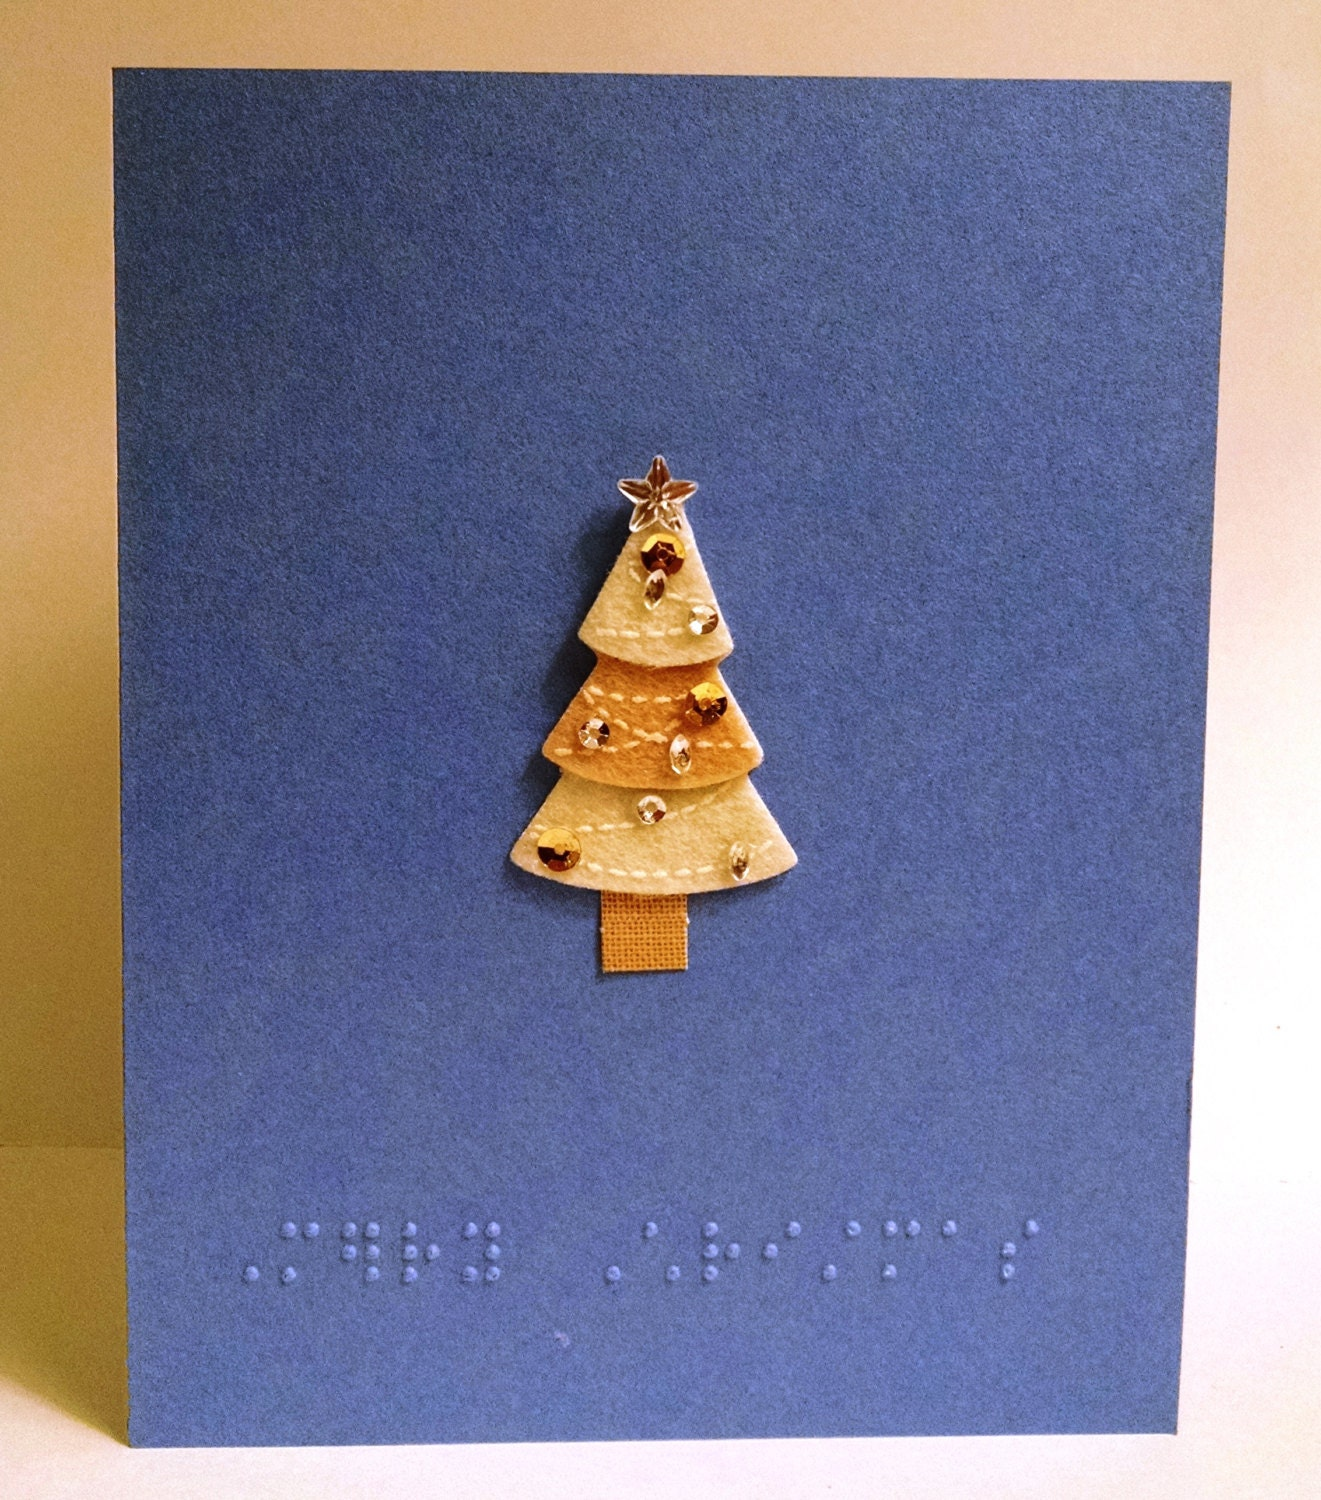 Merry Christmas braille Christmas tree greeting card | Etsy